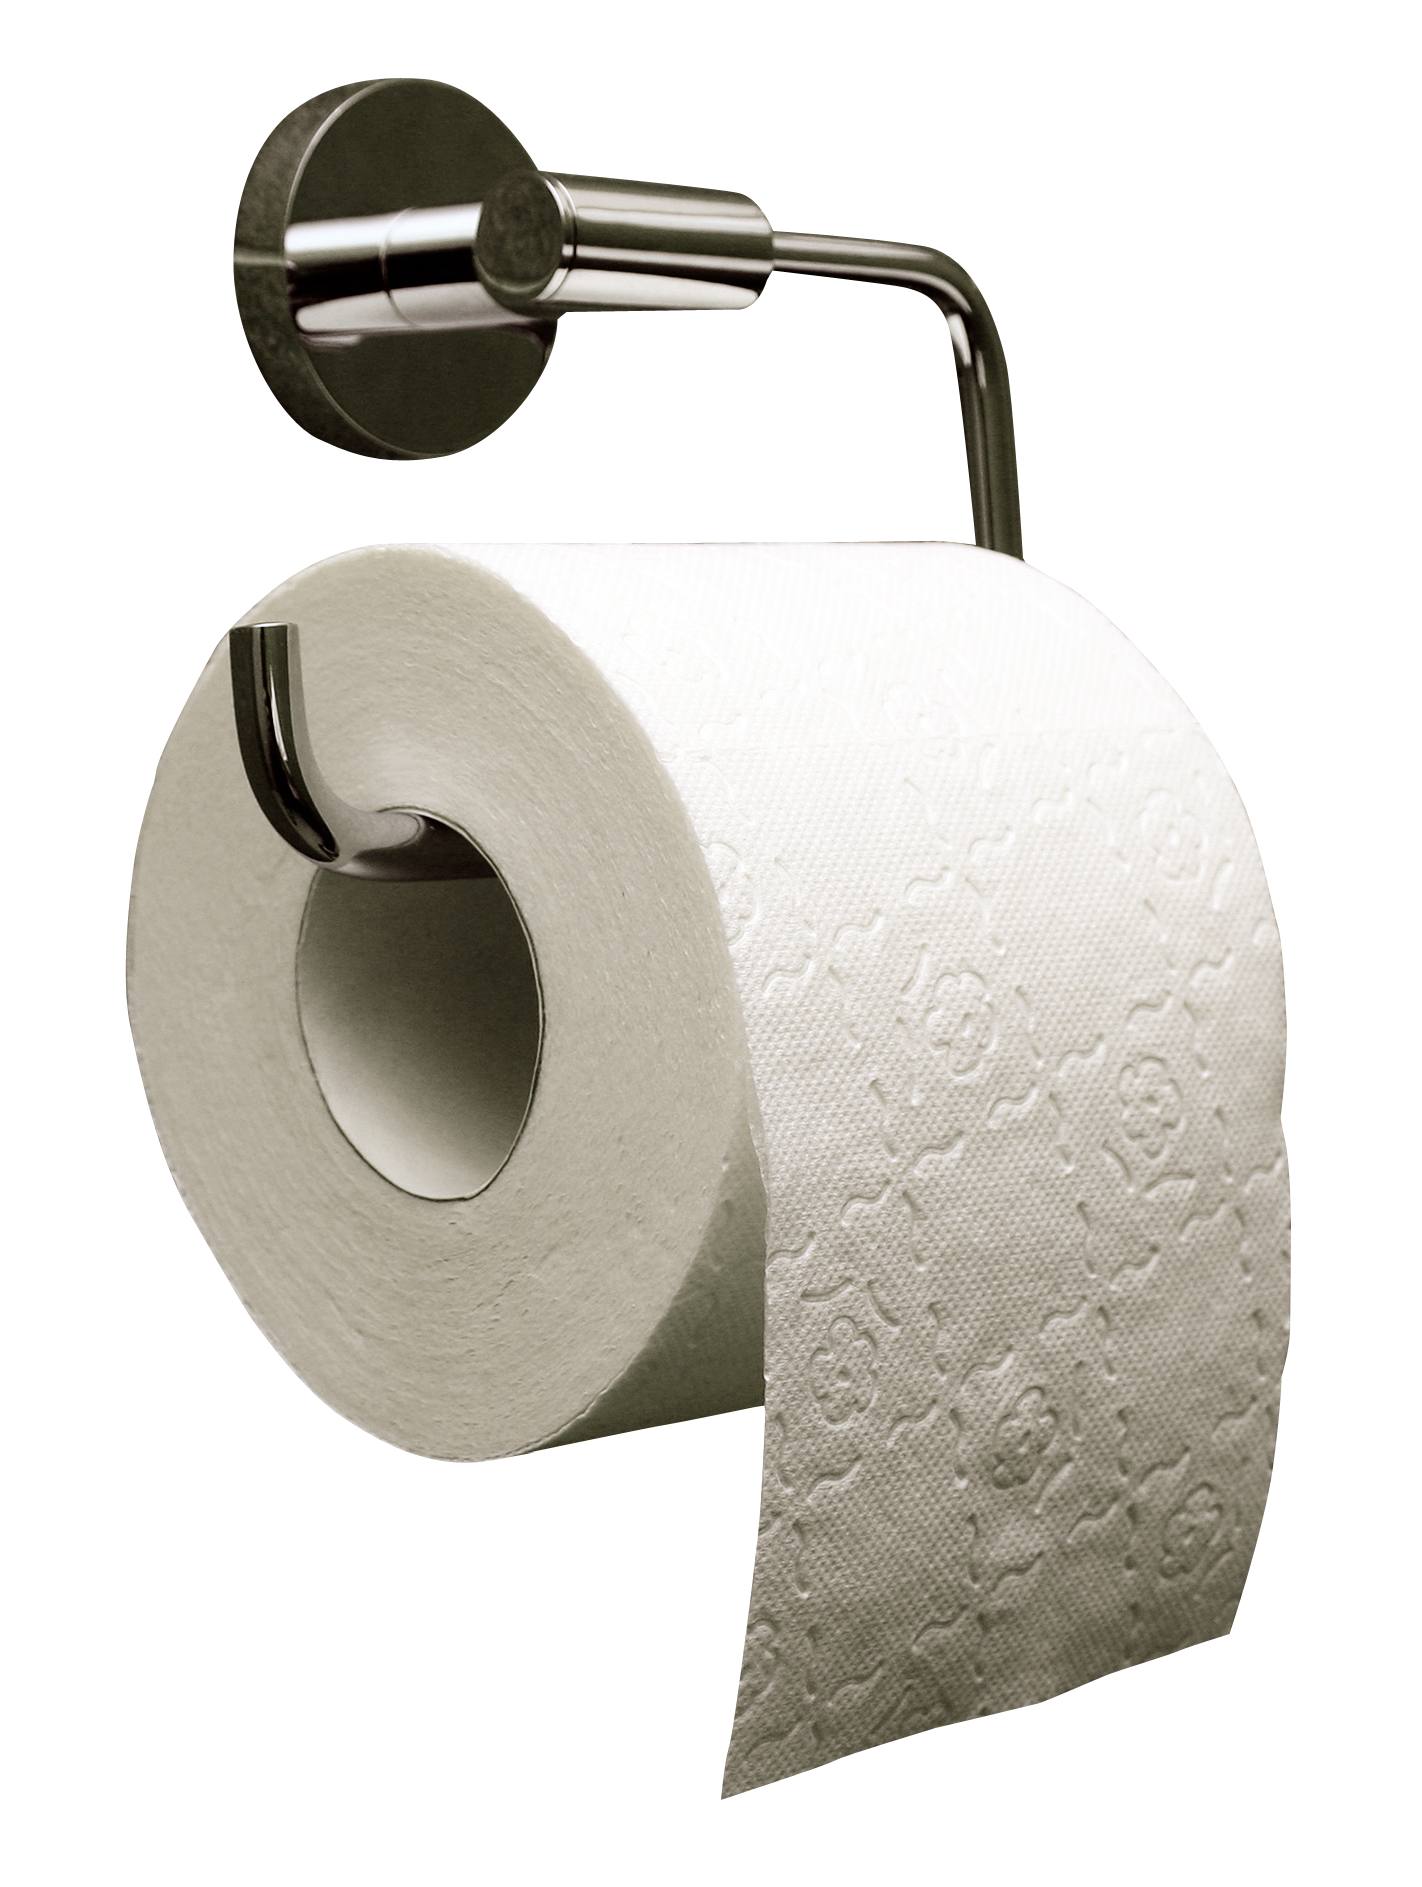 Clipart bathroom object. Toilet paper roll png